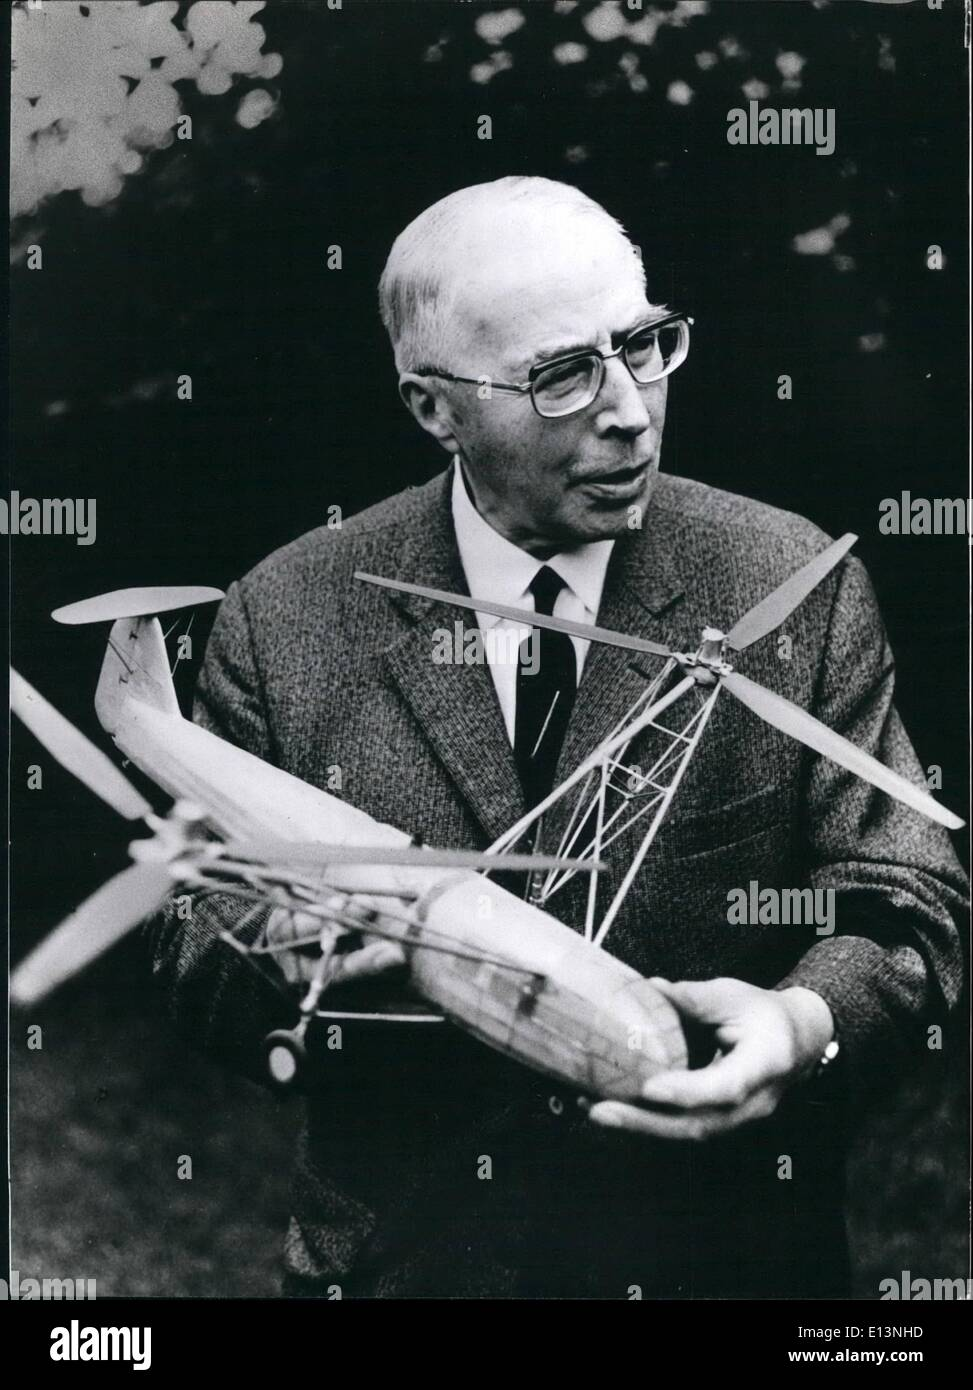 Mar. 22, 2012 - Airplane Designer Heinrich Focke Will be 85 On October 8TH The German airplane designer Heinrich Focke will become 85 on October 8th 1975. 1908 he started with the building of planes - with a some what odd gilder the first big jumps were made at the Osterdeich in Bremen, his native town. 13 years later, as he had just finished his studies at the technical university in Hanover, he got the official permittance for his first plane, the A 7. 1924, the ''Focke-Wulf Flugzeugbau AG '' was founded, which produced until 1933 - Stock Image